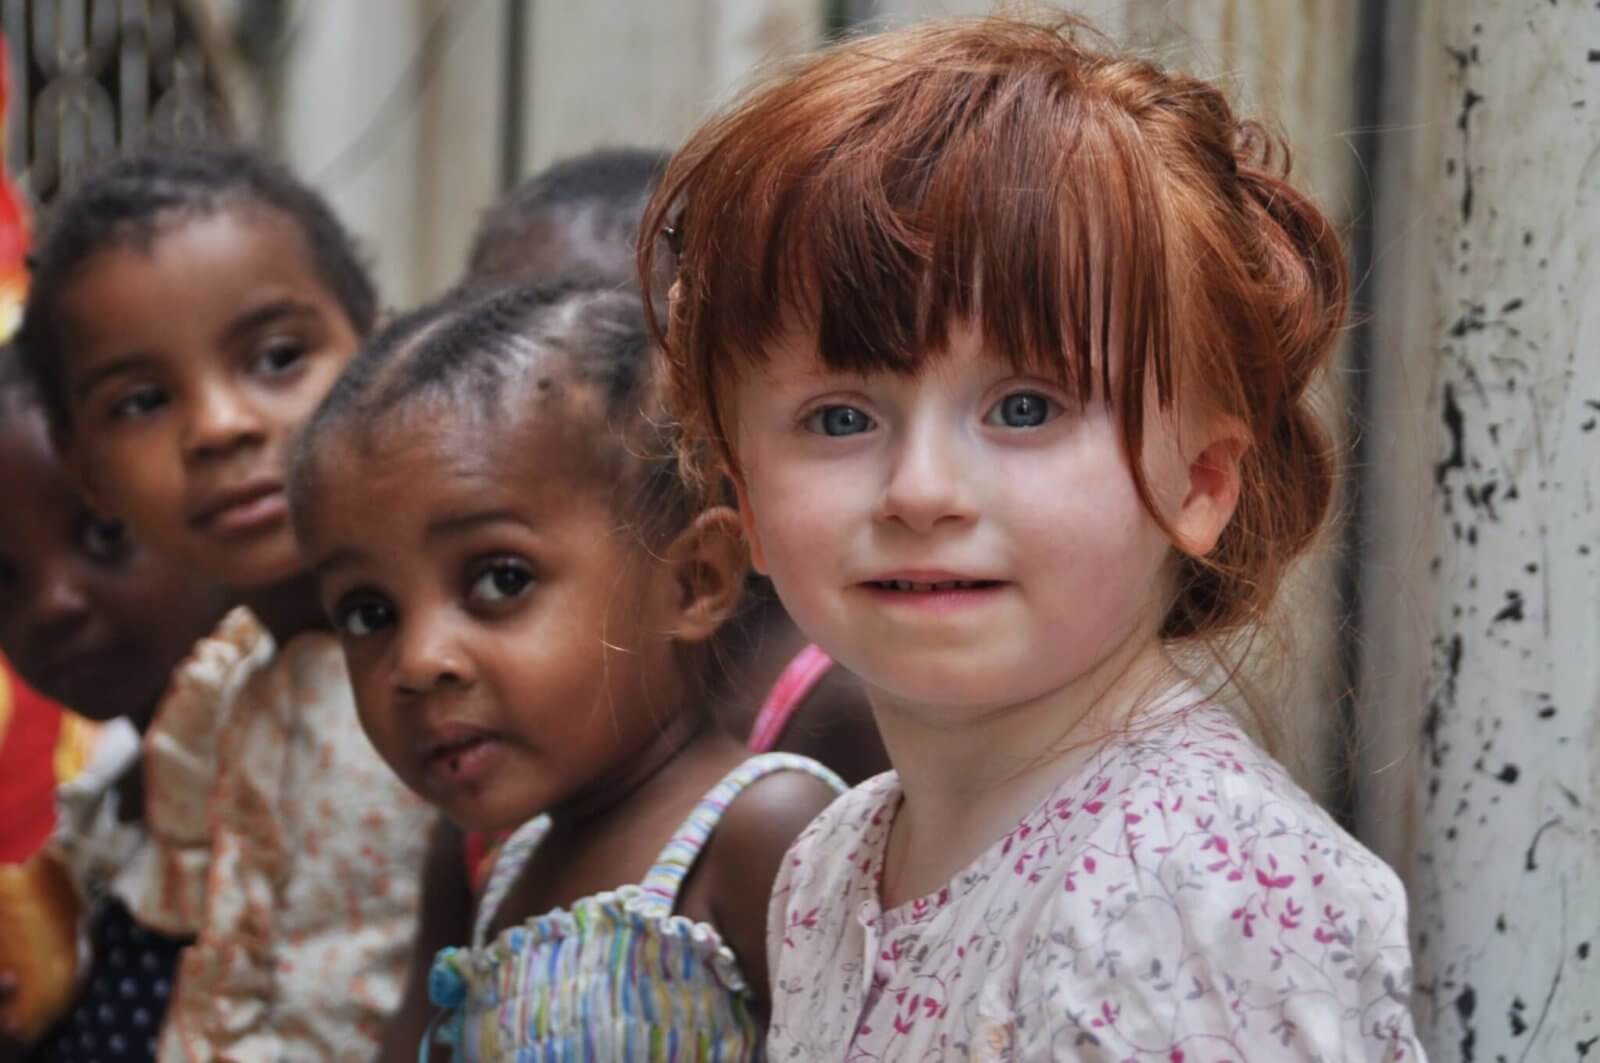 Smiling ginger-haired girl with friends from Zanzibar